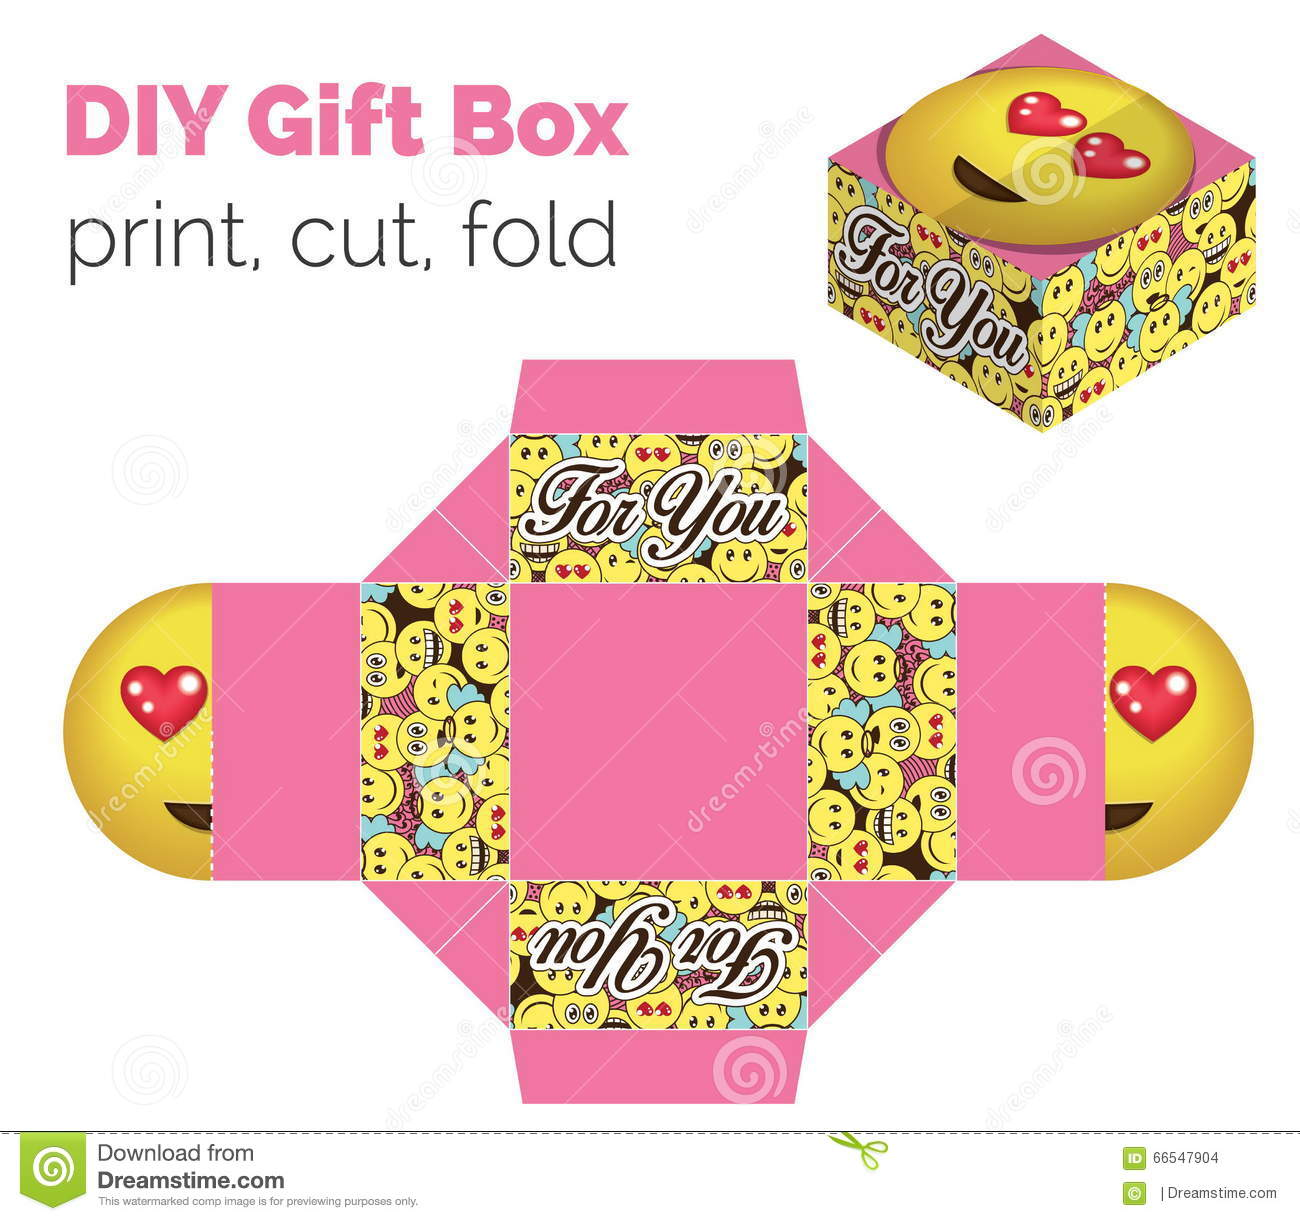 Lovely Do It Yourself Diy In Love Expression Gift Box For Sweets